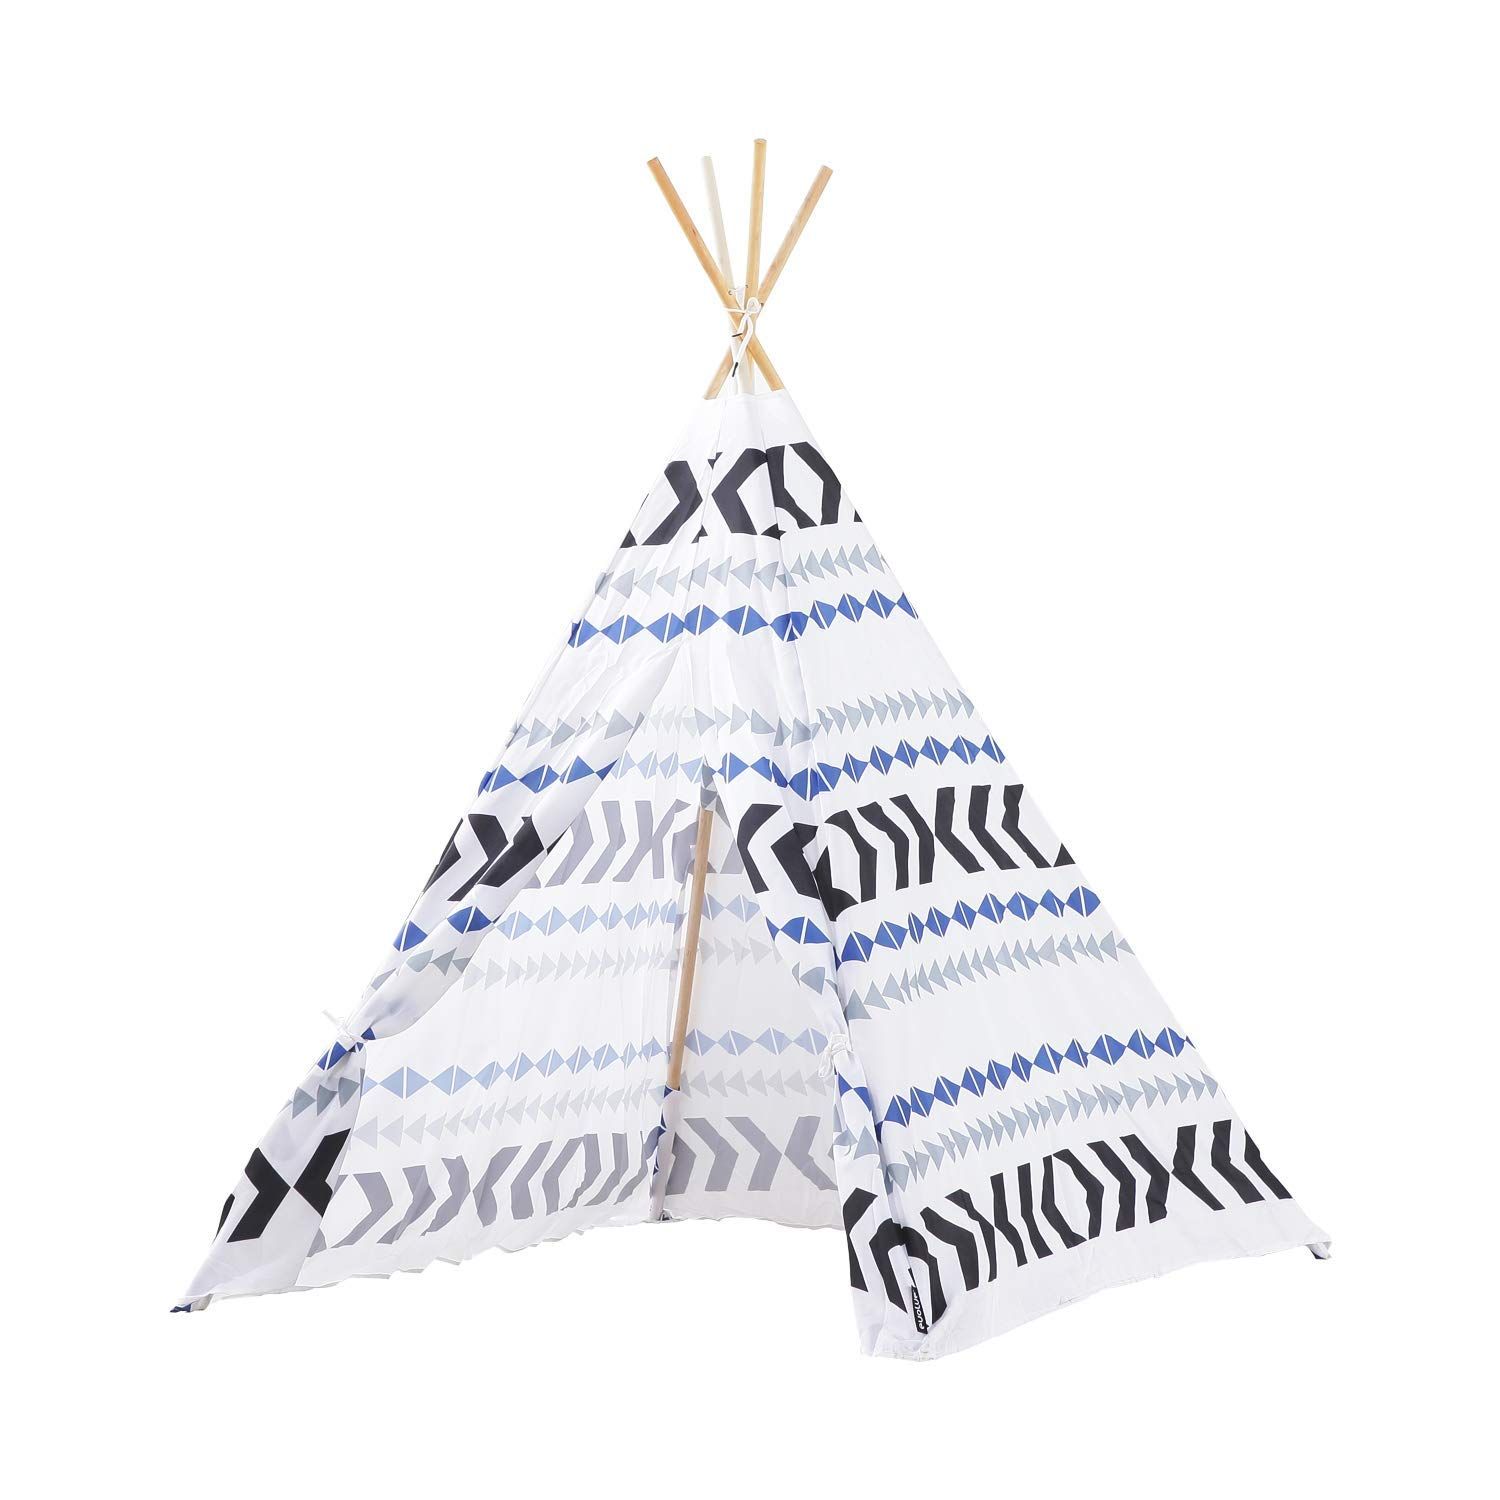 MallBest Kids Play Indoor Tent(テント)s Indian Teepee Tent(テント) B07R93XK2C MallBest Children Playhouse Canvas Portable for Indoor and Outdoor (Blue) [並行輸入品] B07R93XK2C, 激安コスメビレッジ:a502ac11 --- number-directory.top